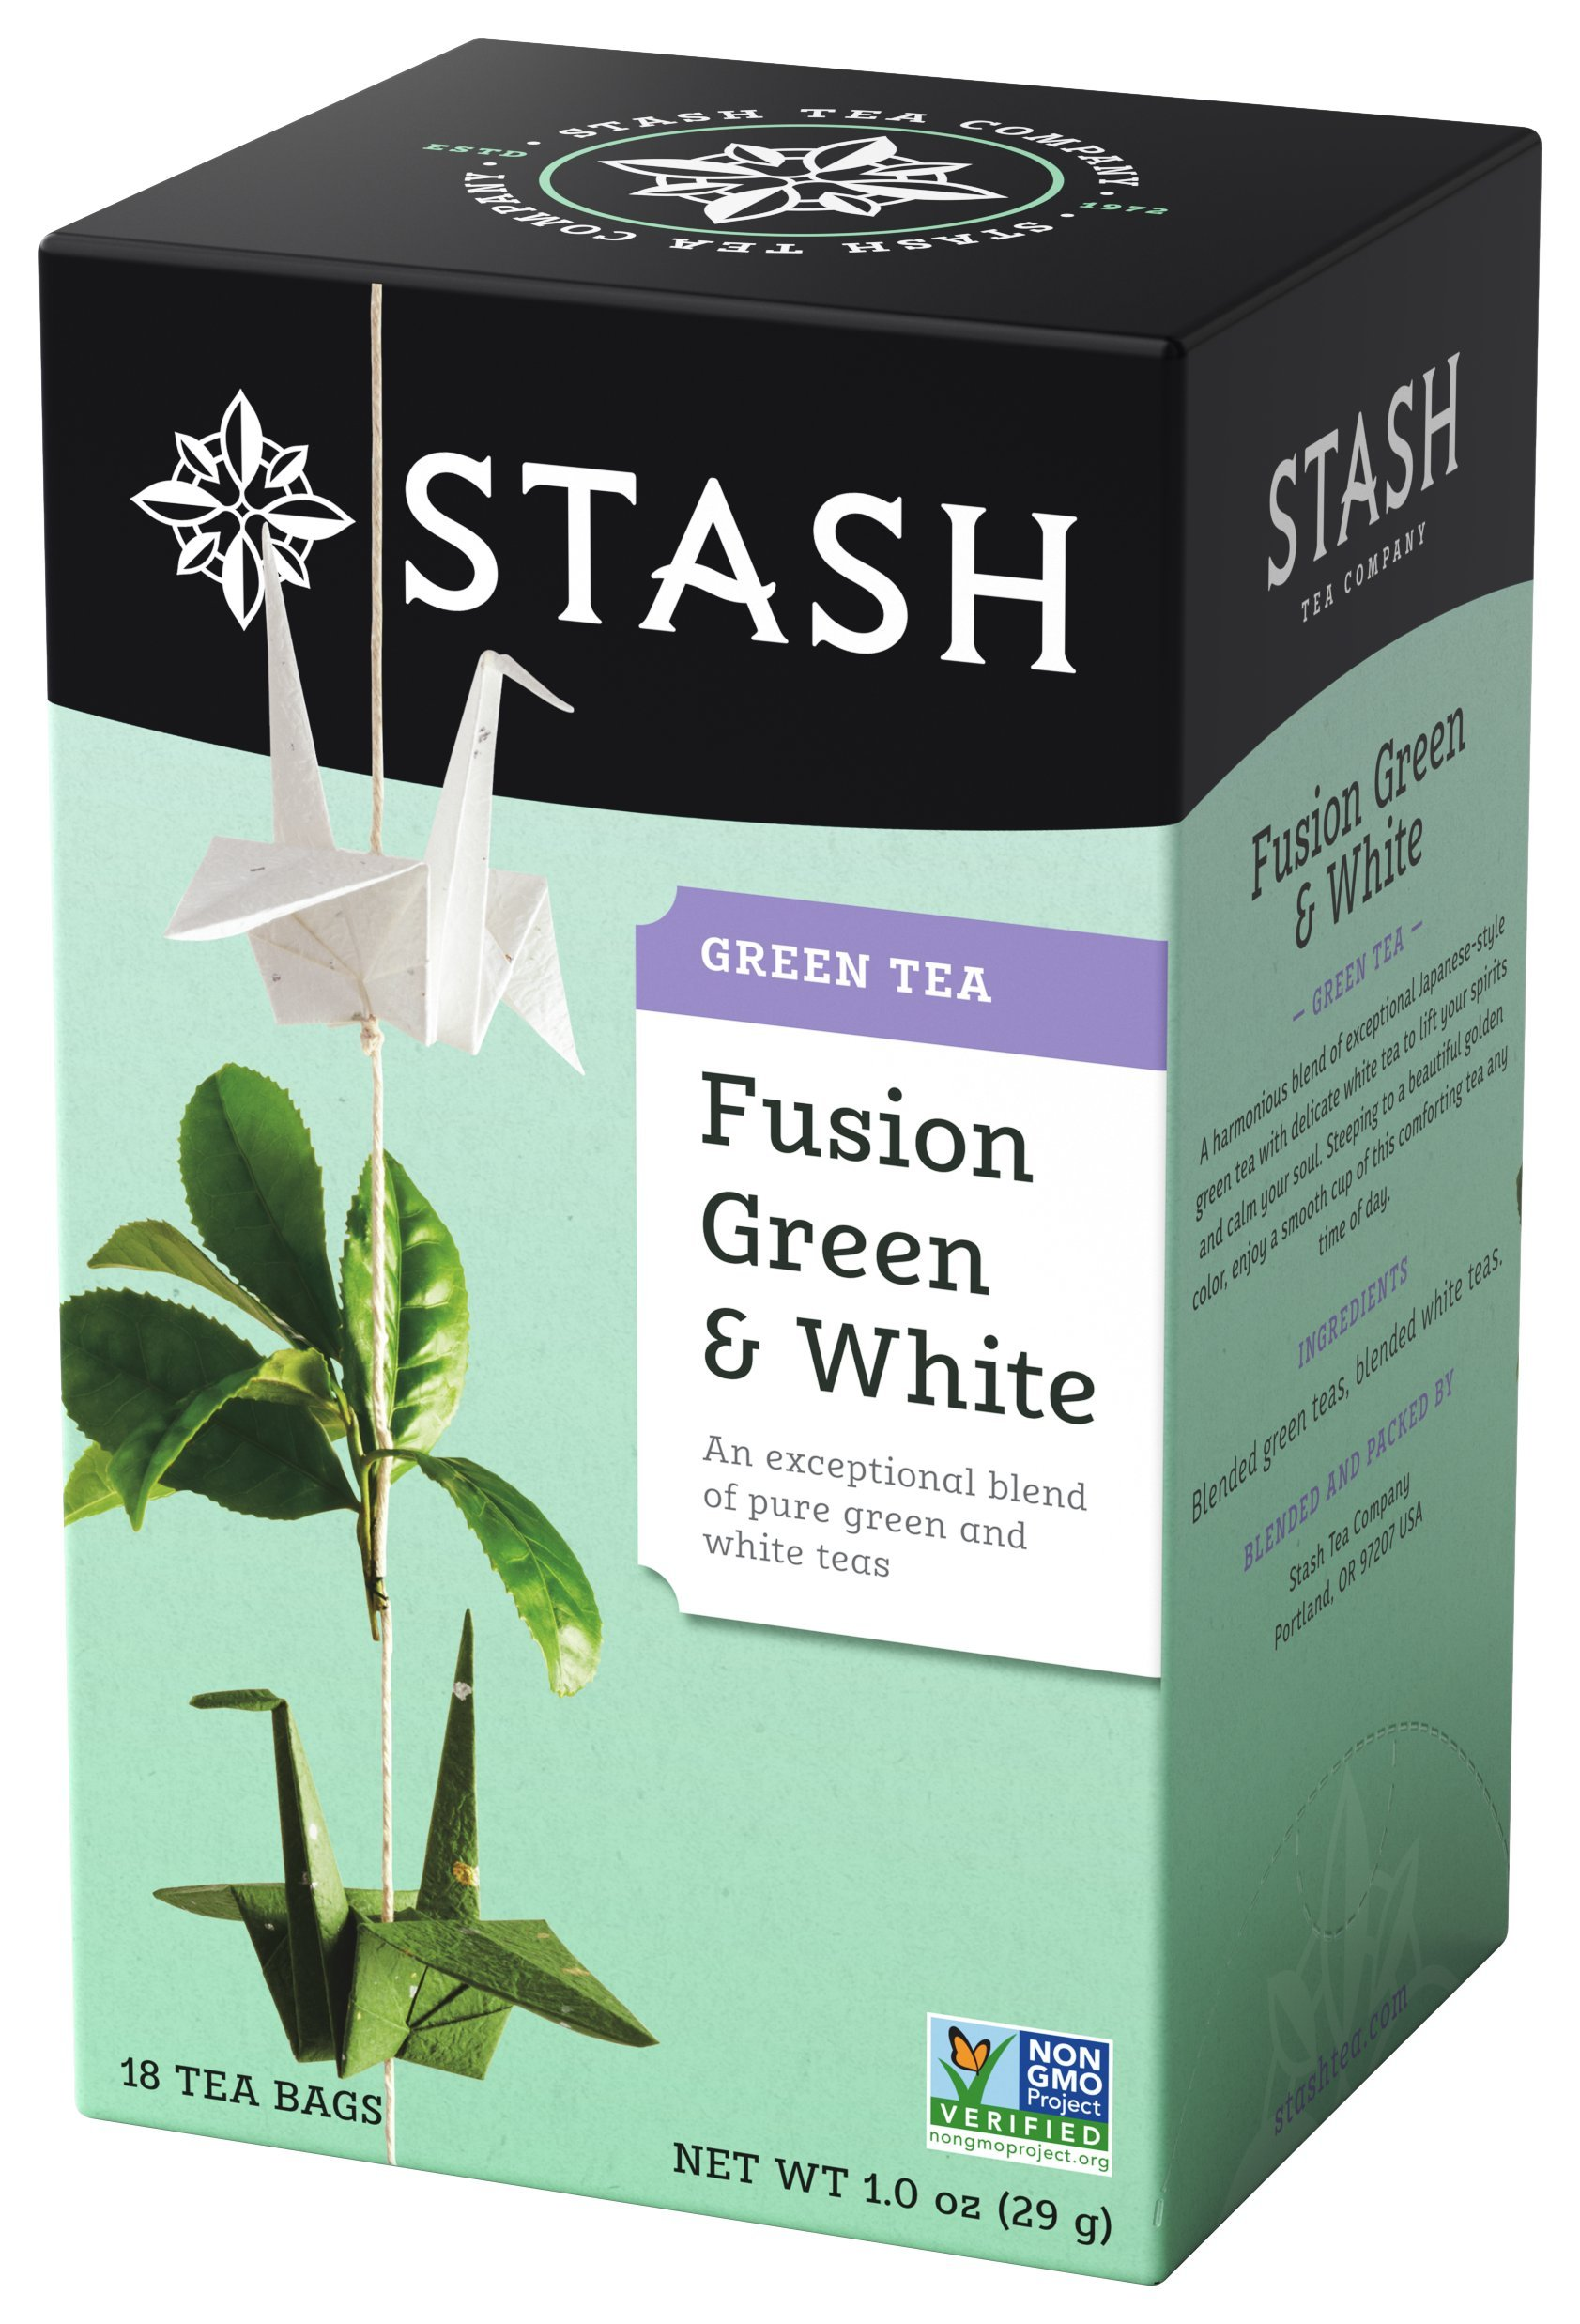 Stash Tea Fusion Green & White Tea, 18 Count Tea Bags in Foil (Pack of 6) (packaging may vary)